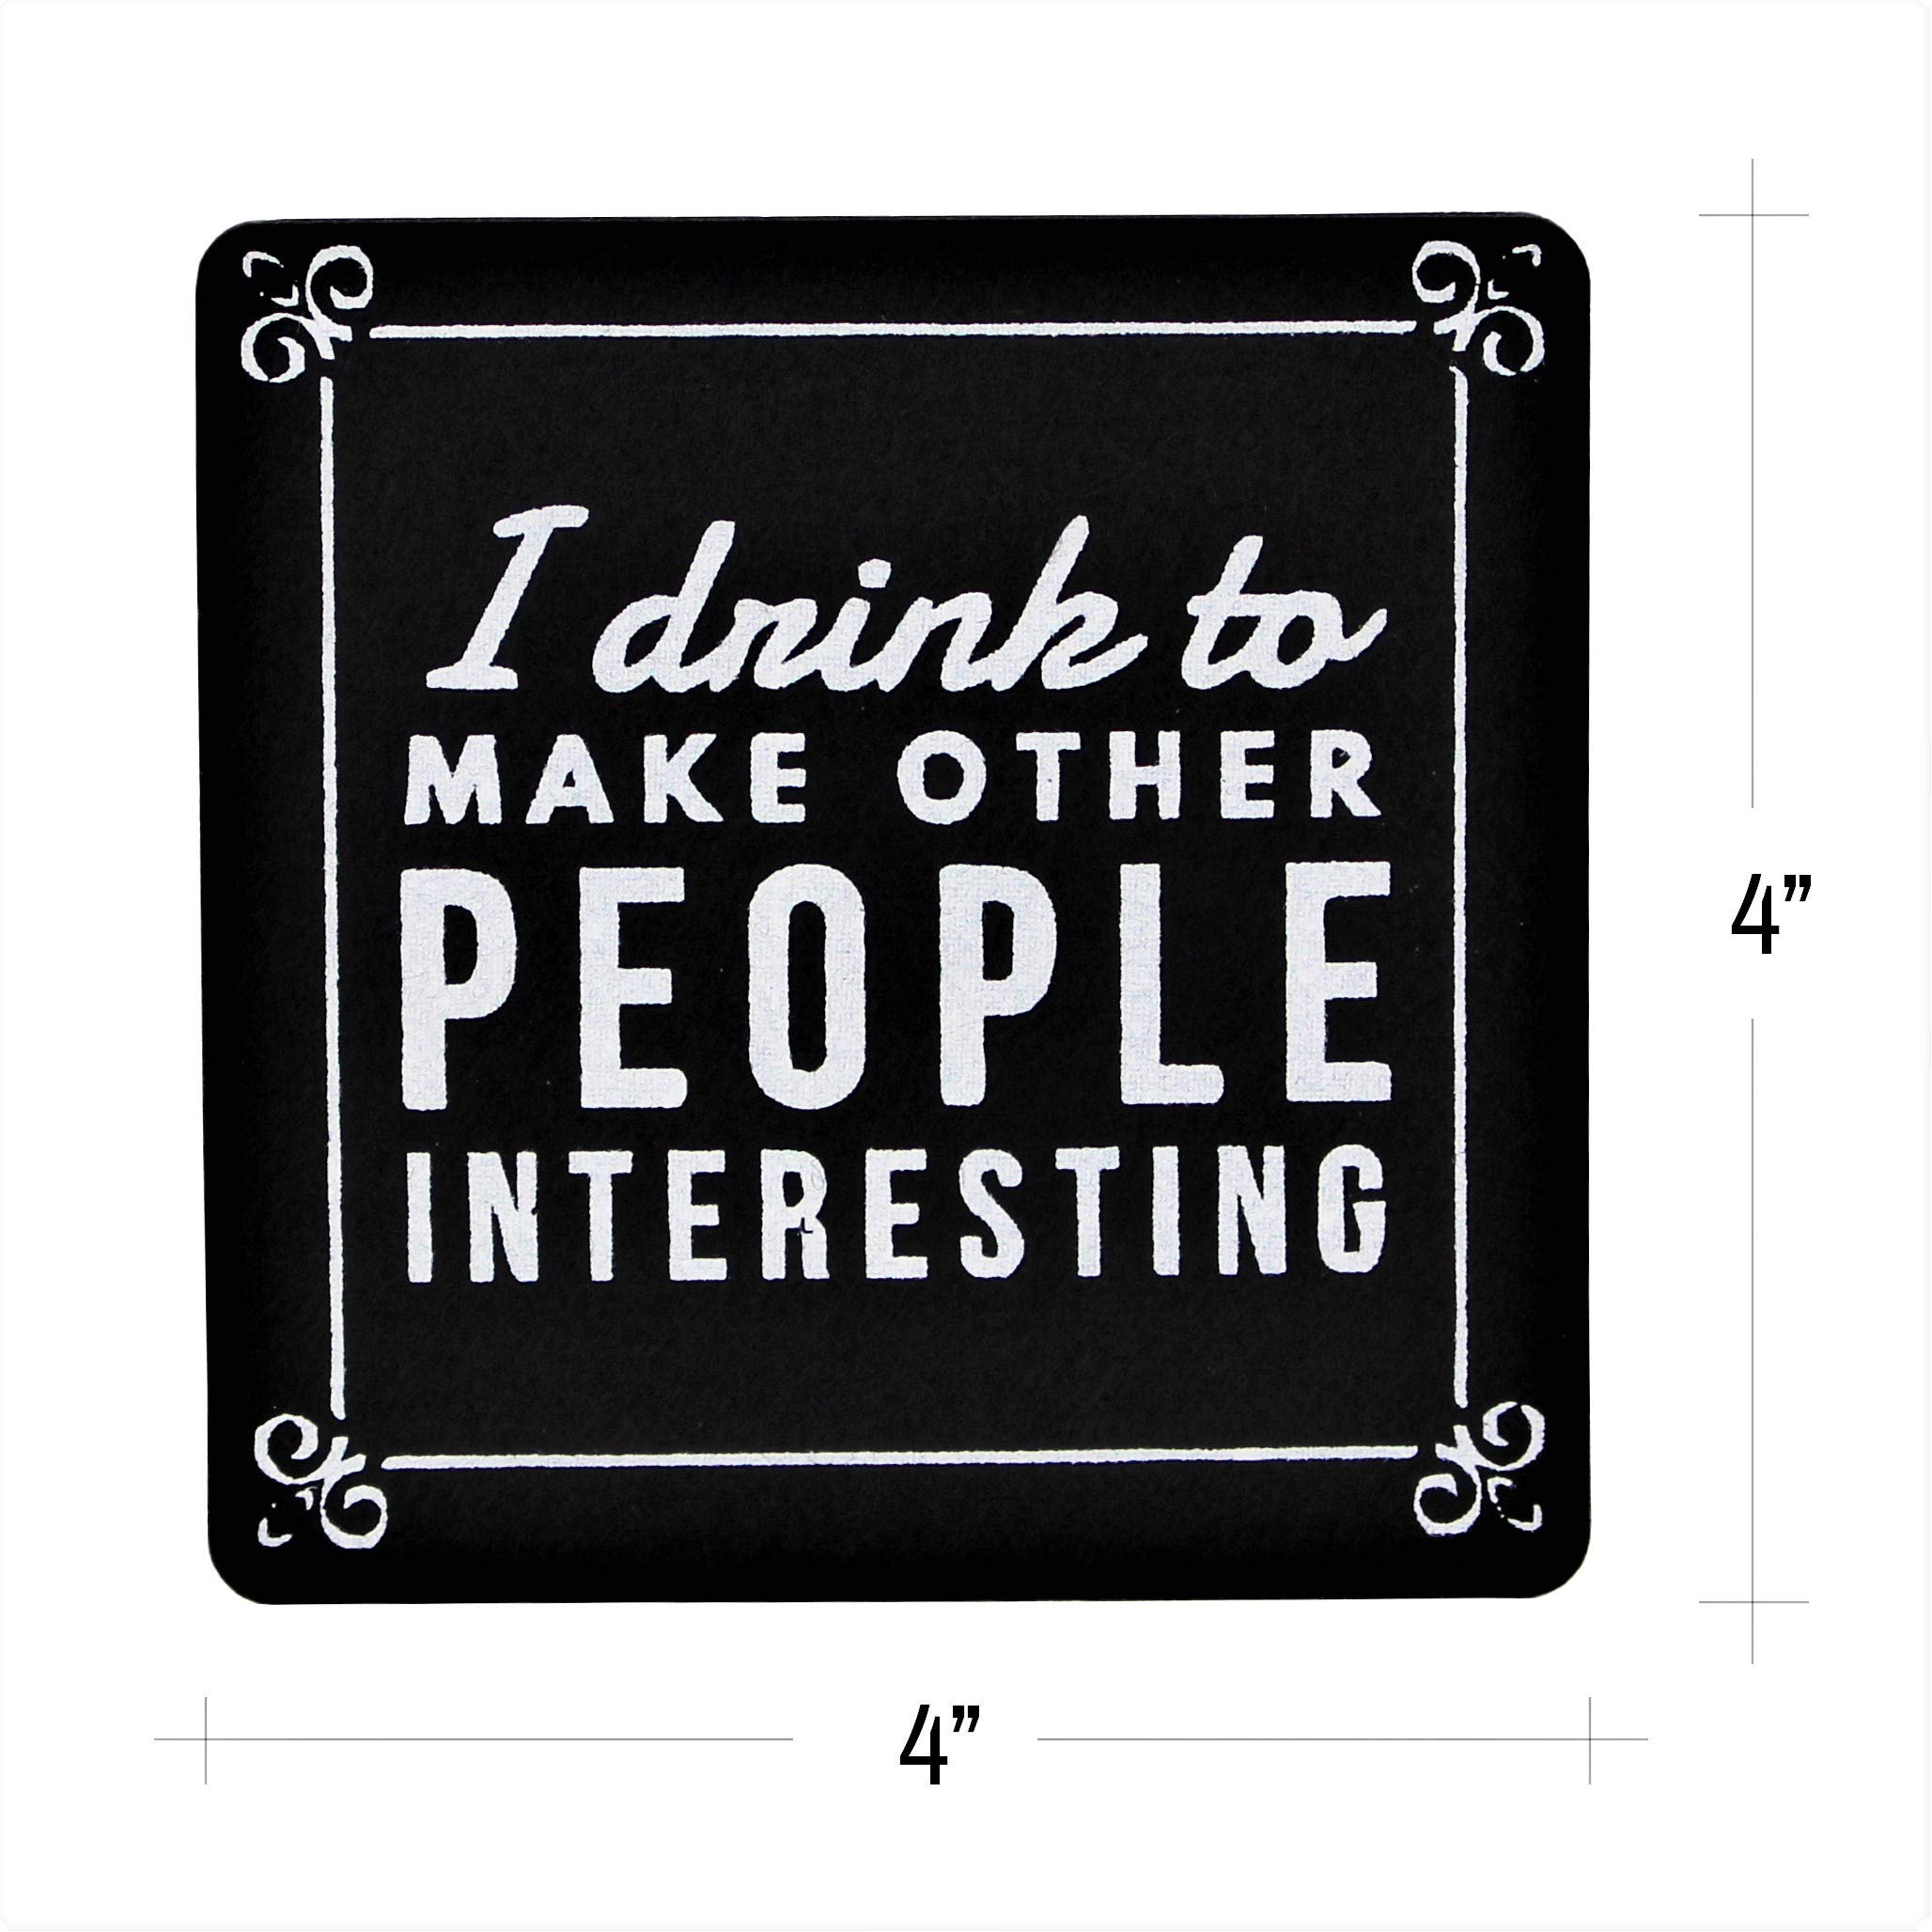 Summit One Funny Wine Quote Felt Coasters, Set of 10 (4 x 4 Inch, 5mm Thick) Premium Absorbent Felt Drink Coasters with Hilarious Wine Quotes - Unique Wine Gifts for Women - With Coaster Holder